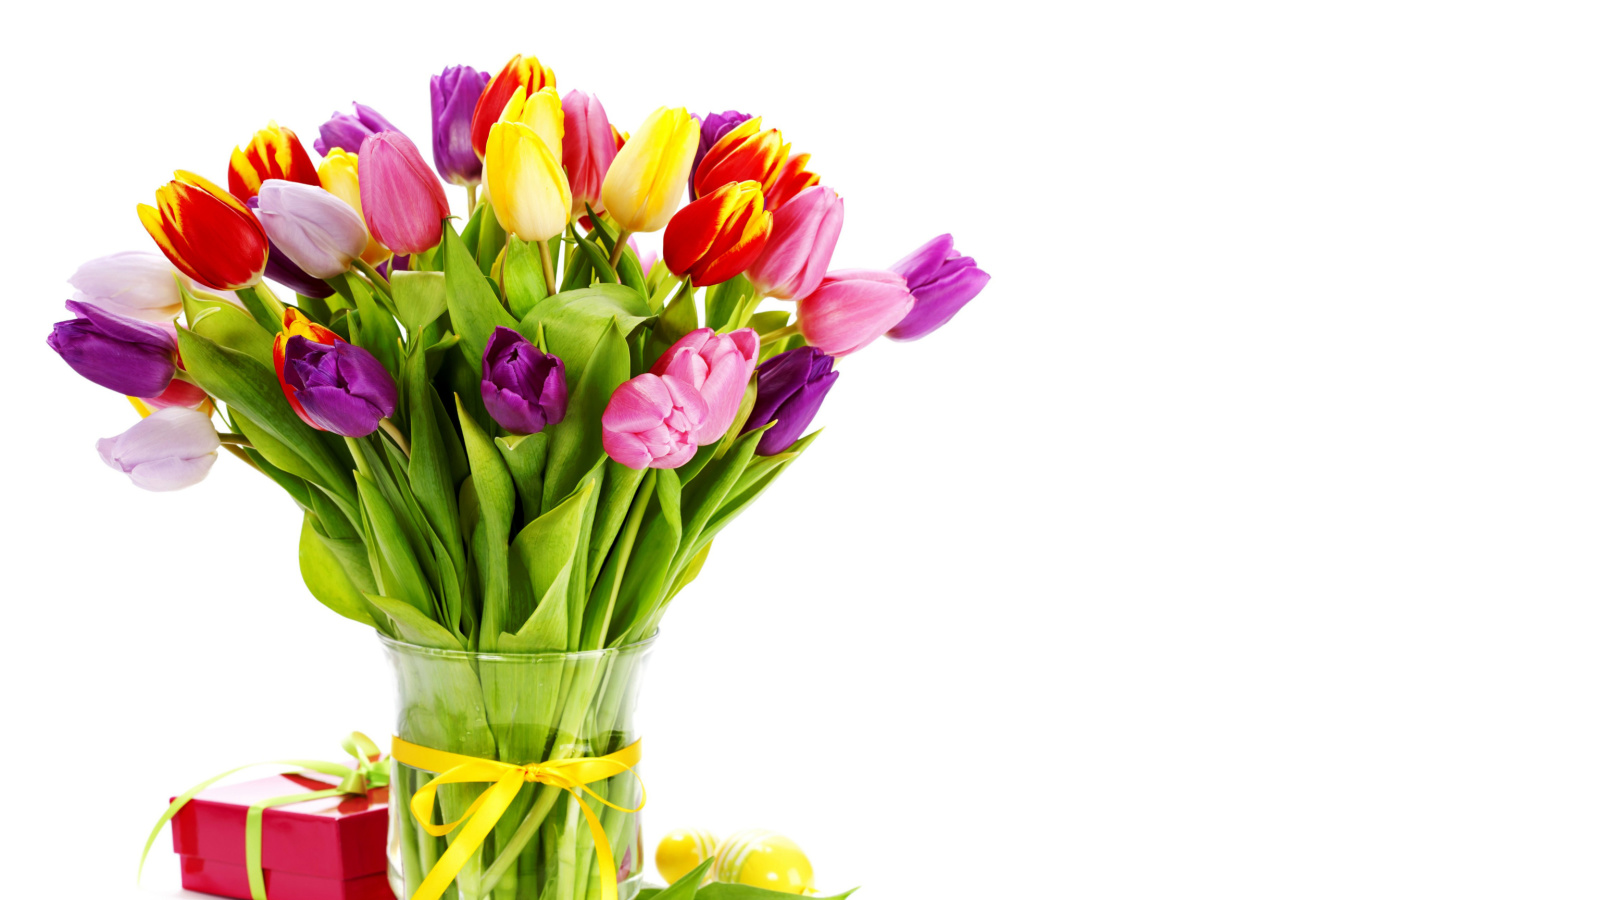 http://files.vividscreen.info/soft/2ad4fb9481aaef991a03ea179e371368/Tulips-Bouquet-and-Gift-1600x900.jpg